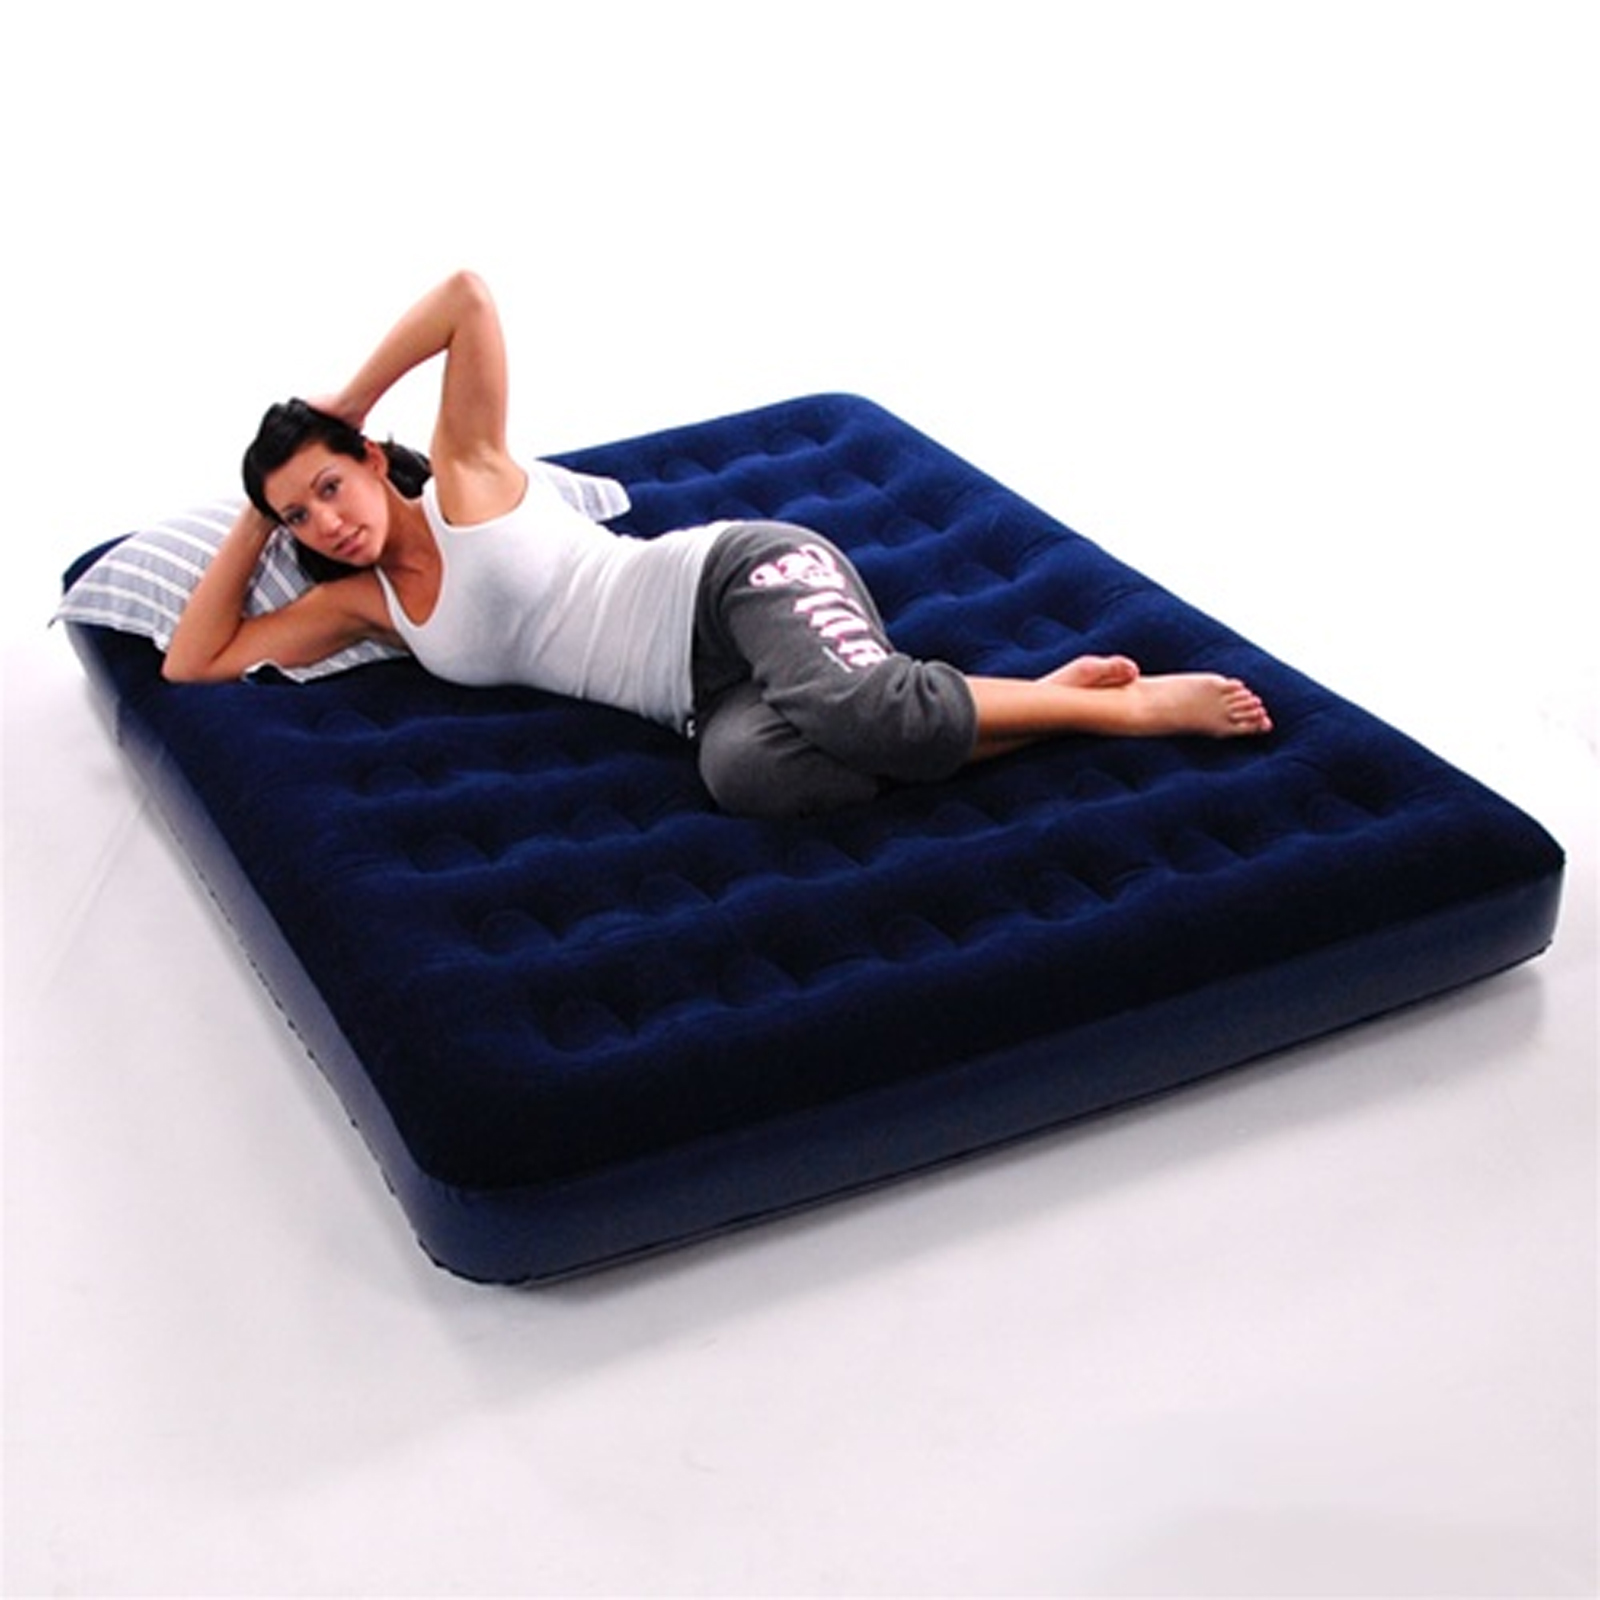 Double Inflatable Mattress Double Inflatable Flocked Blow Up Air Bed Airbed Guest